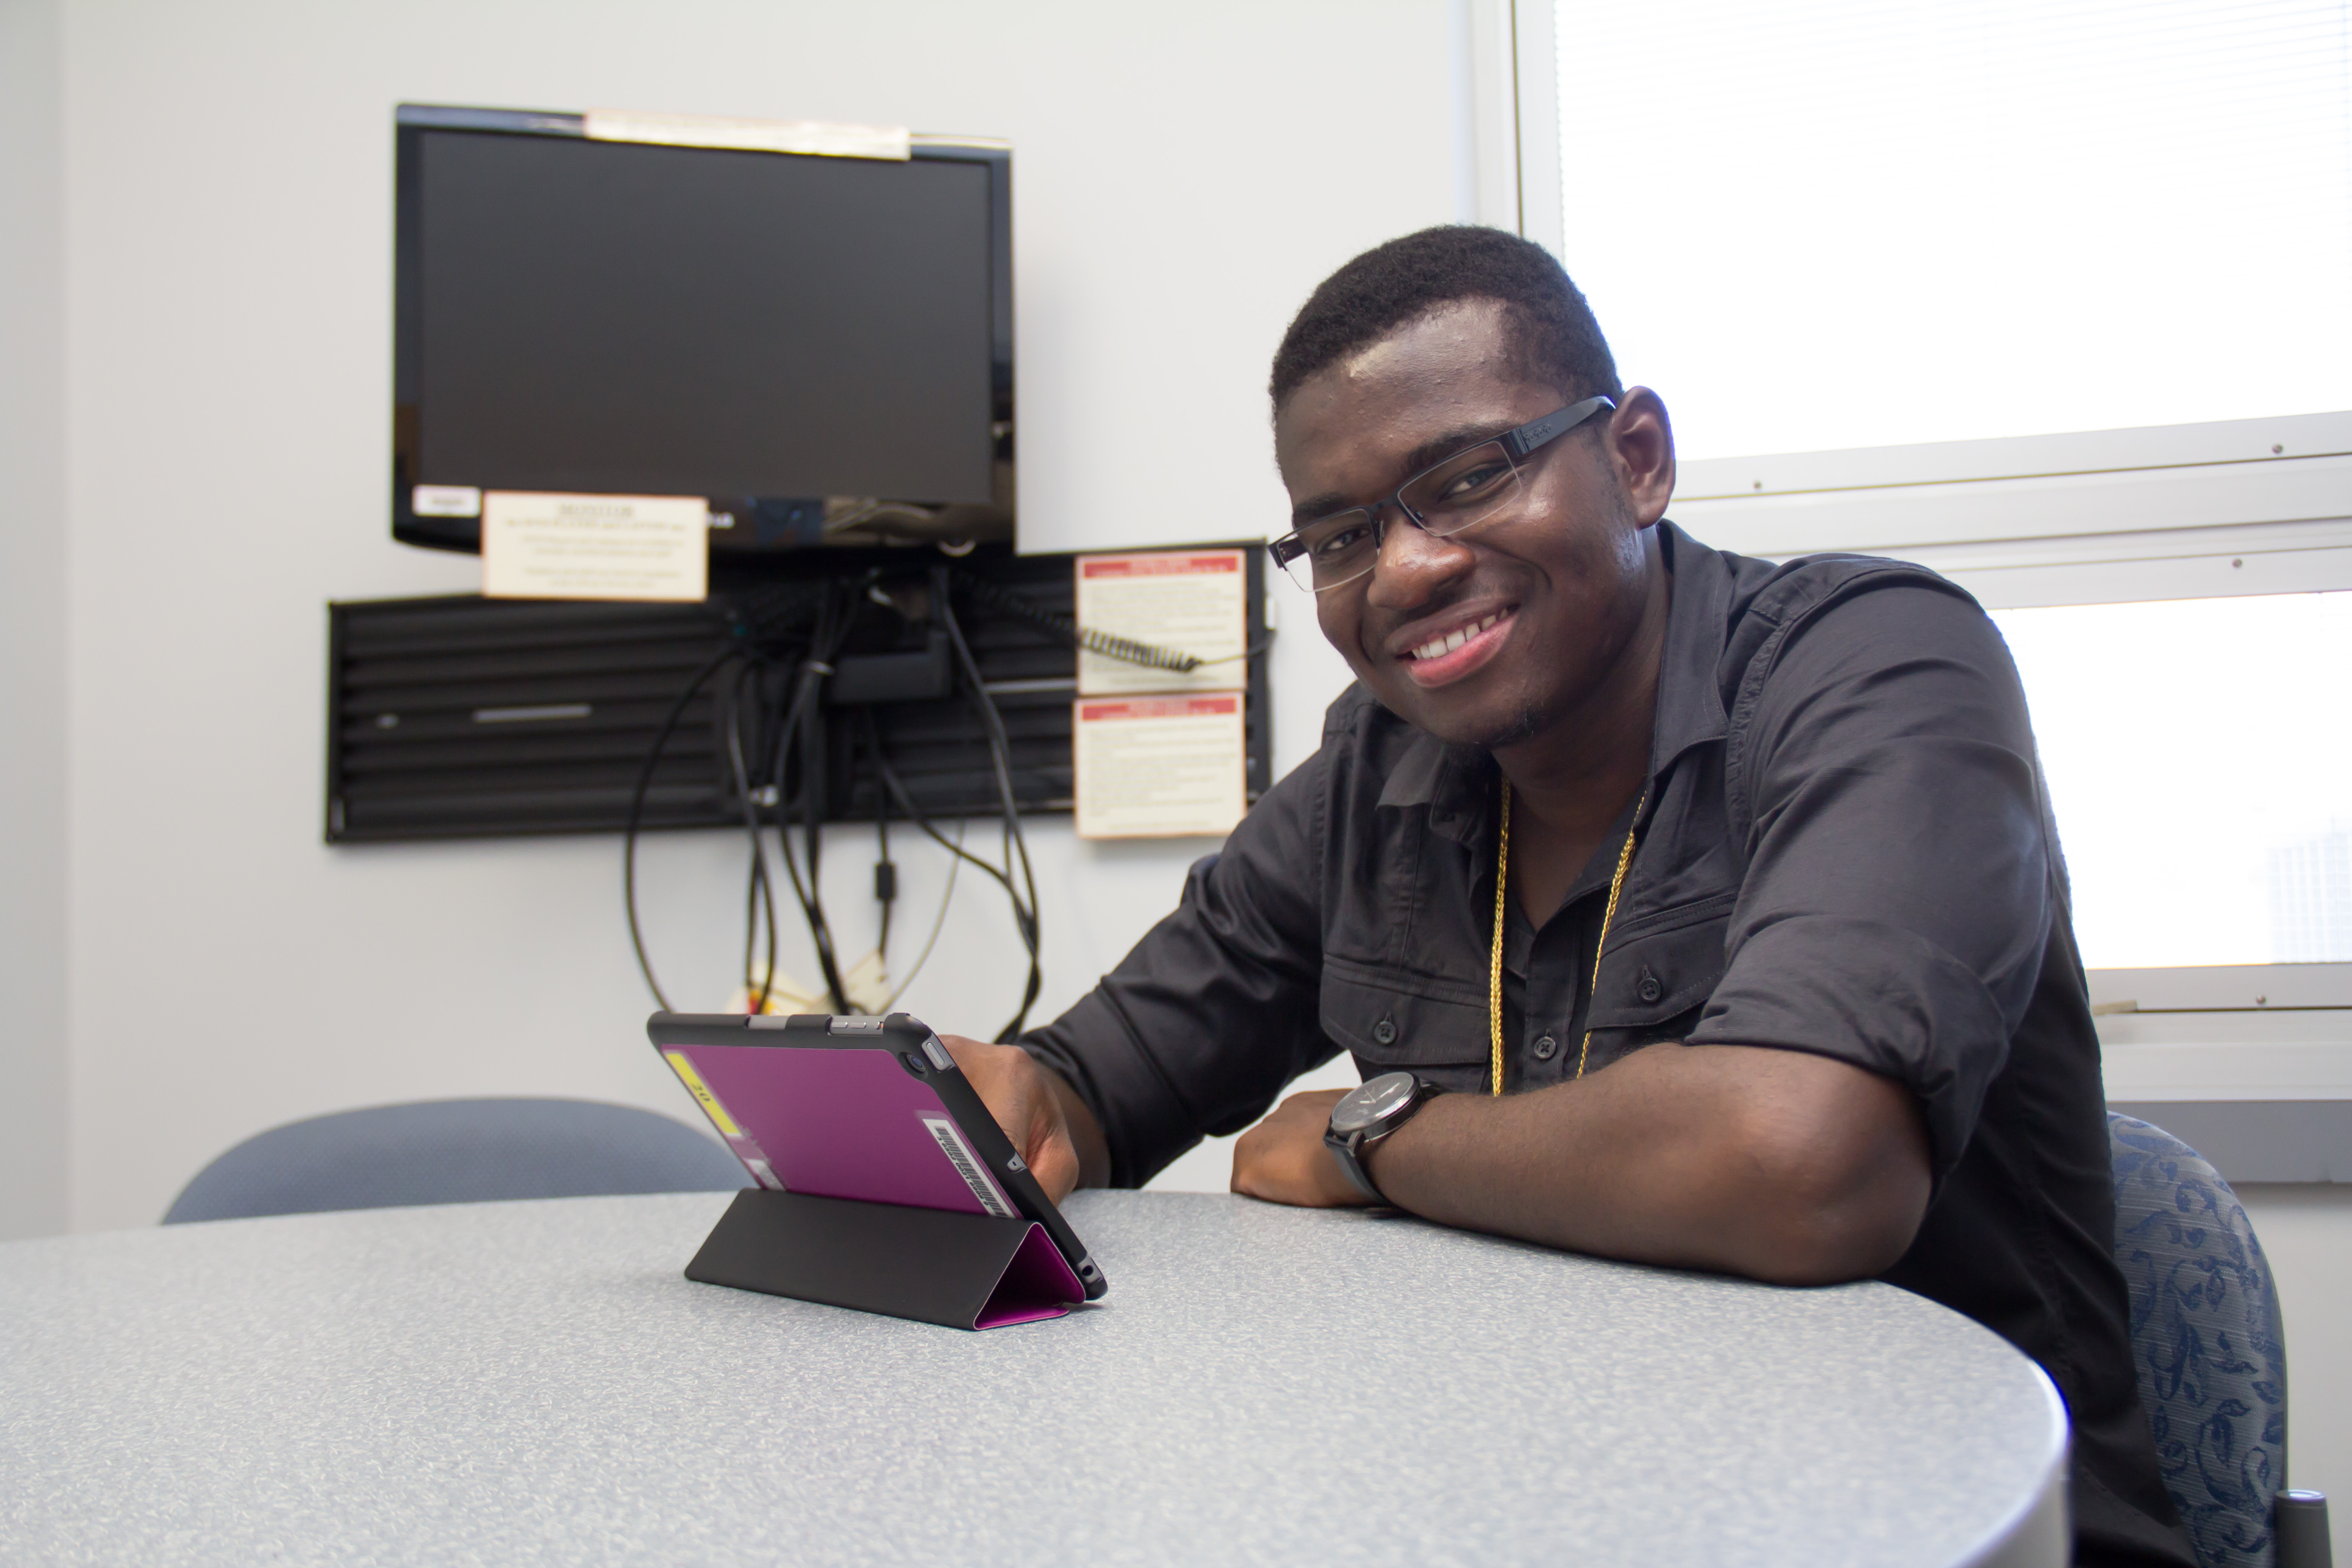 student with iPad in study room